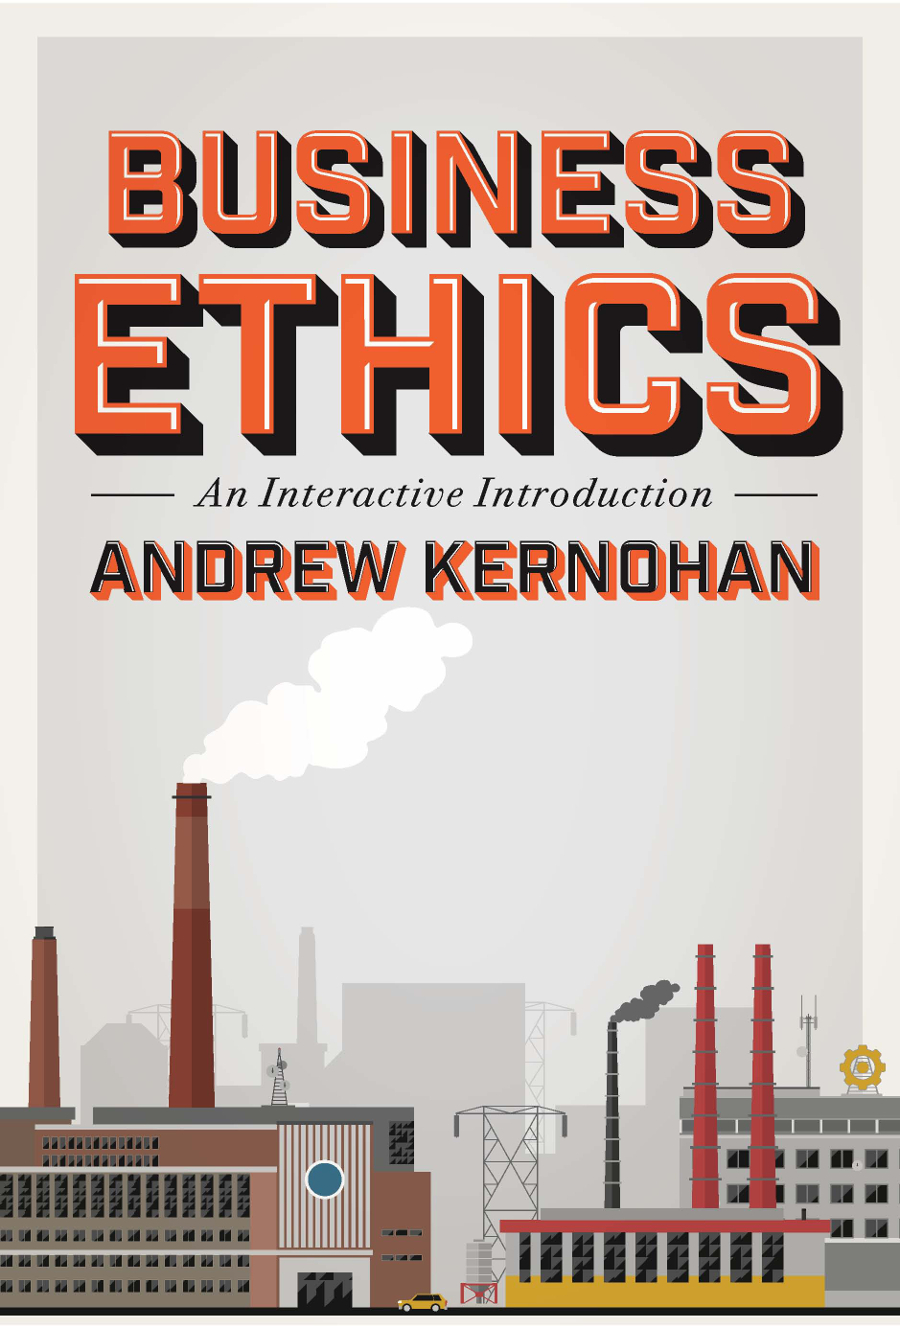 thesis on business ethics Business ethics means the application of ethics in business business ethics are moral principles that guide the way a business behaves introduction to business ethics there is a big difference between what you have a right to do and what is right to do - justice potter stewart.